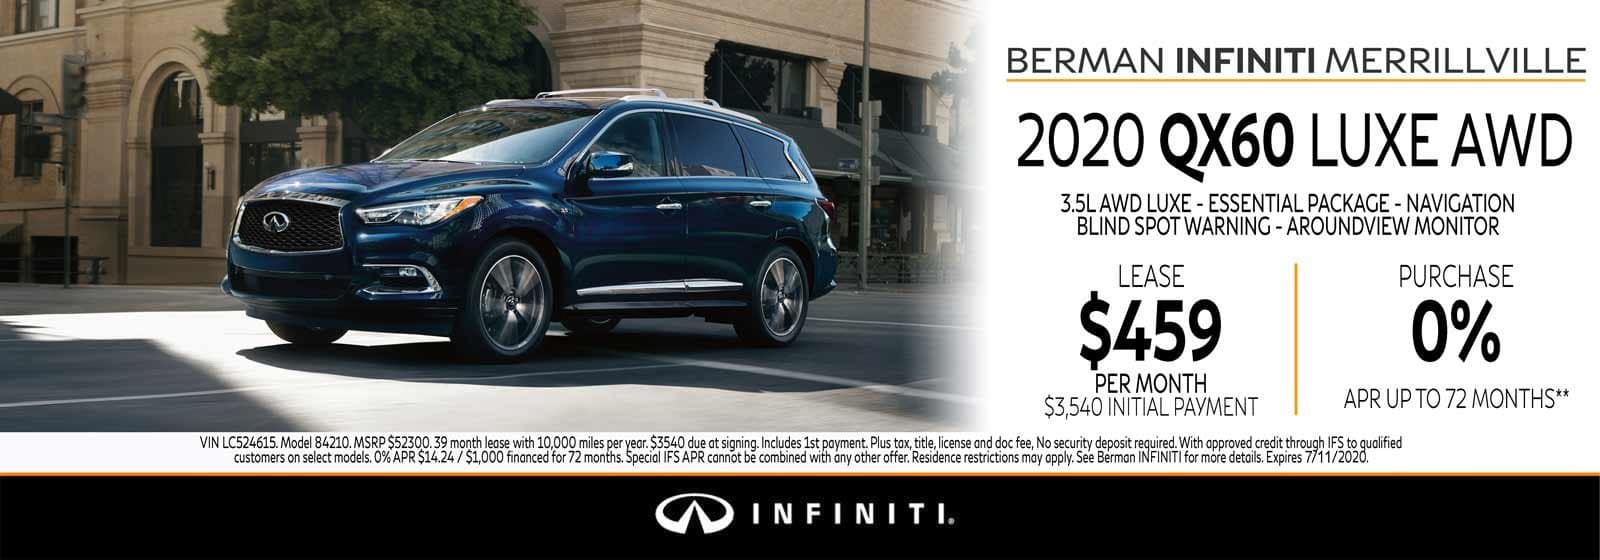 New 2020 INFINITI QX60 July Offer at Berman INFINITI of Merrillville!